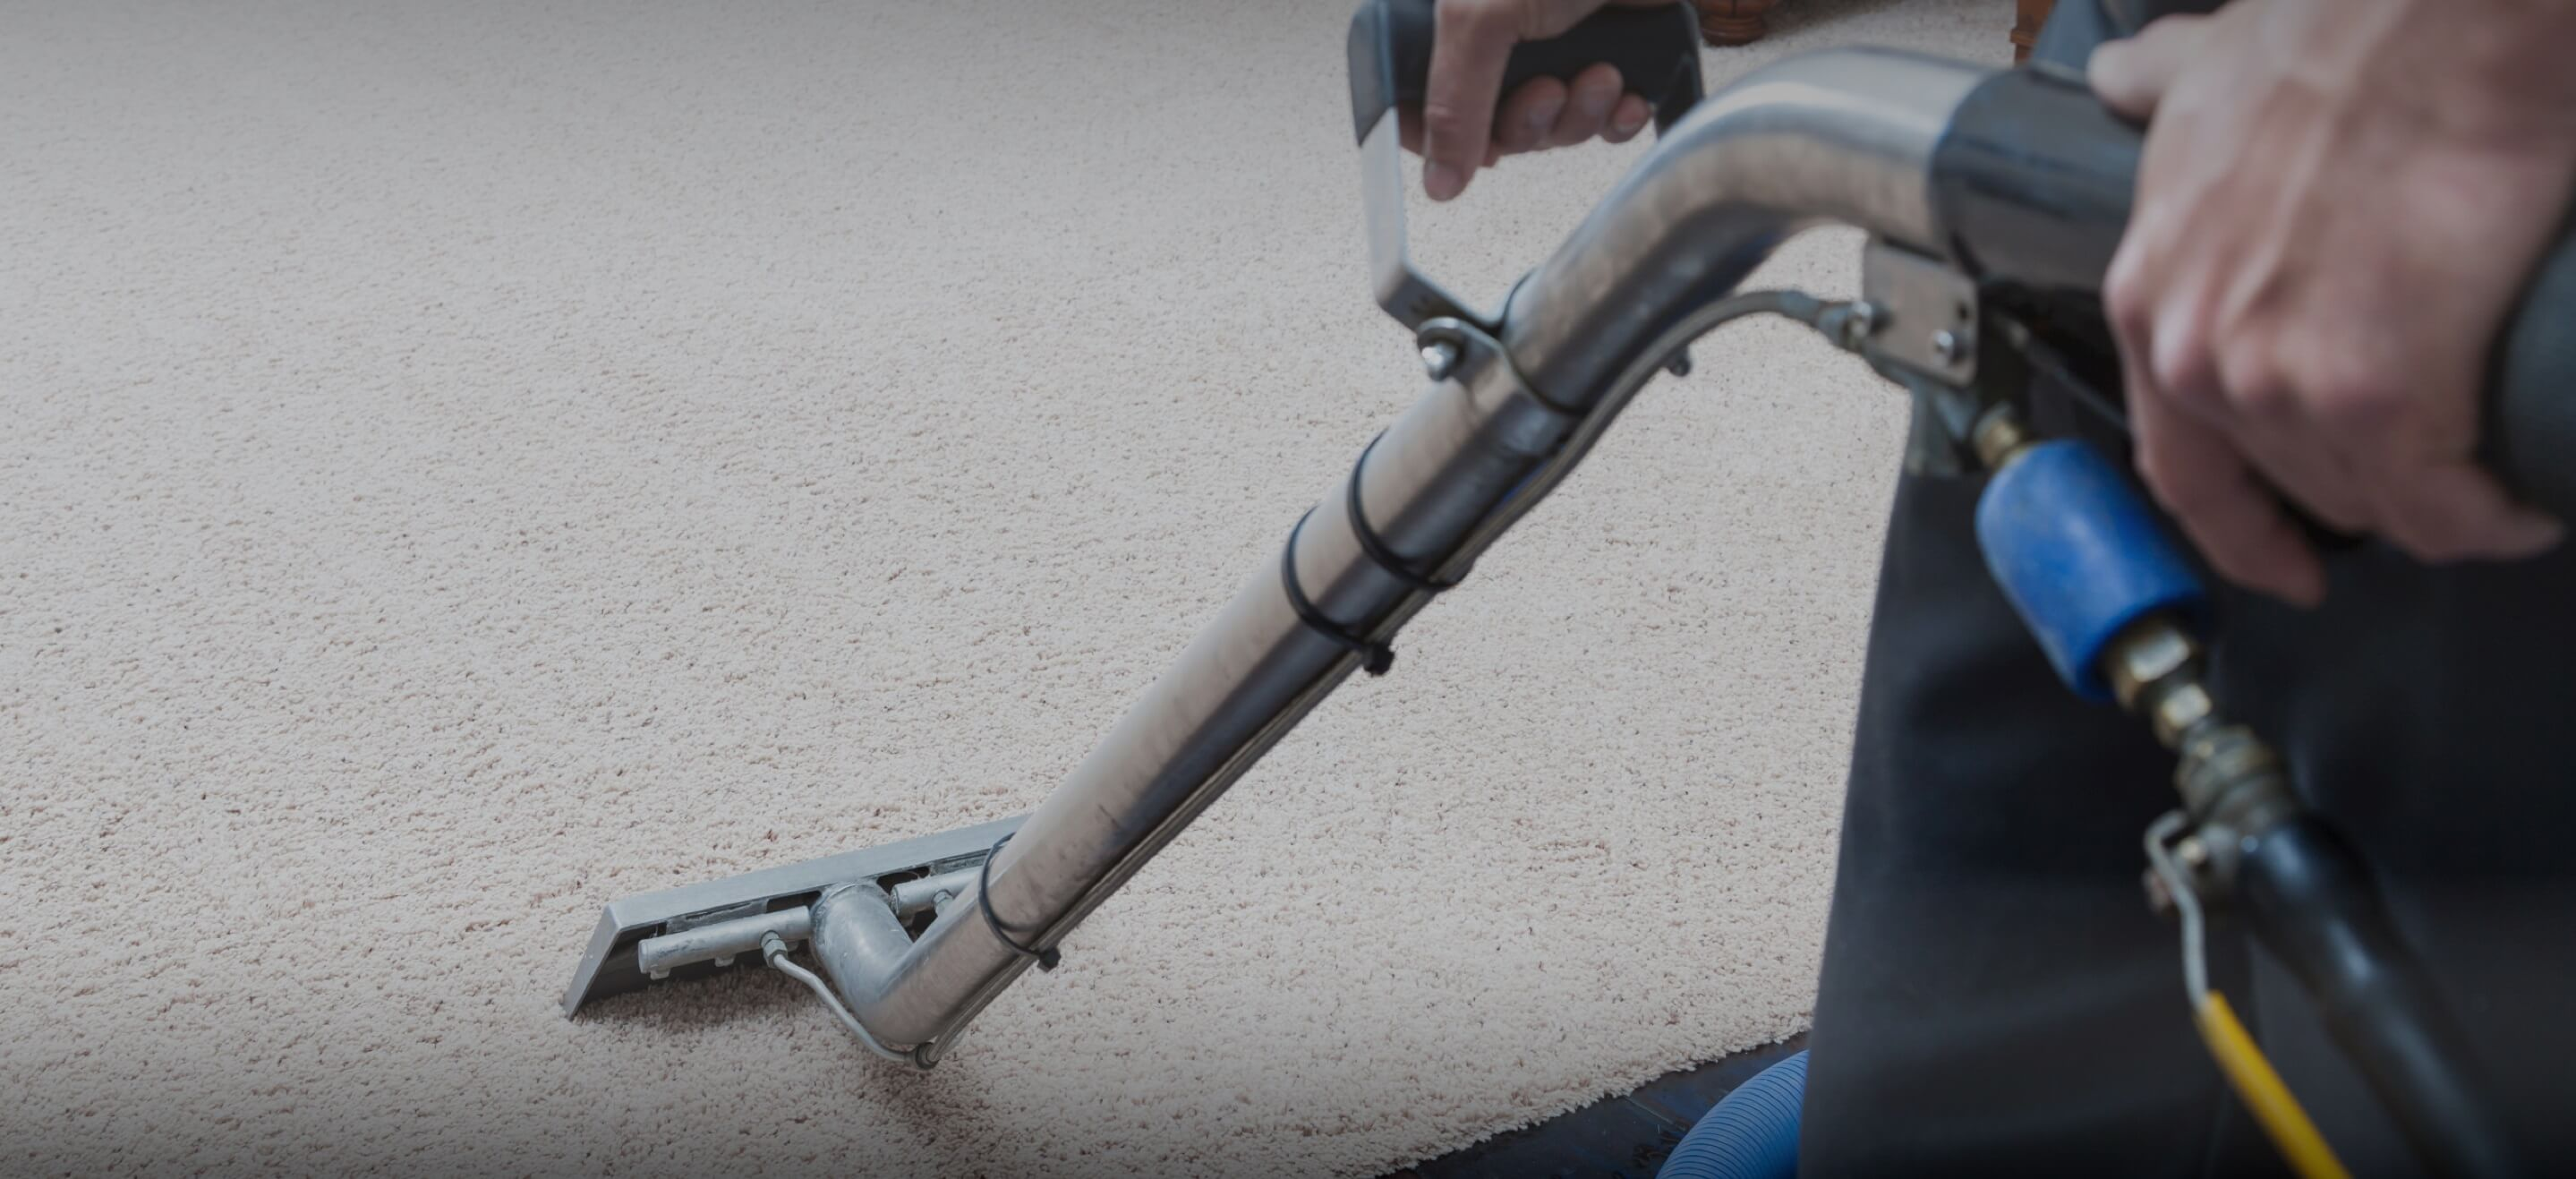 Carpet Cleaning Services In Sunnyvale Quality Local